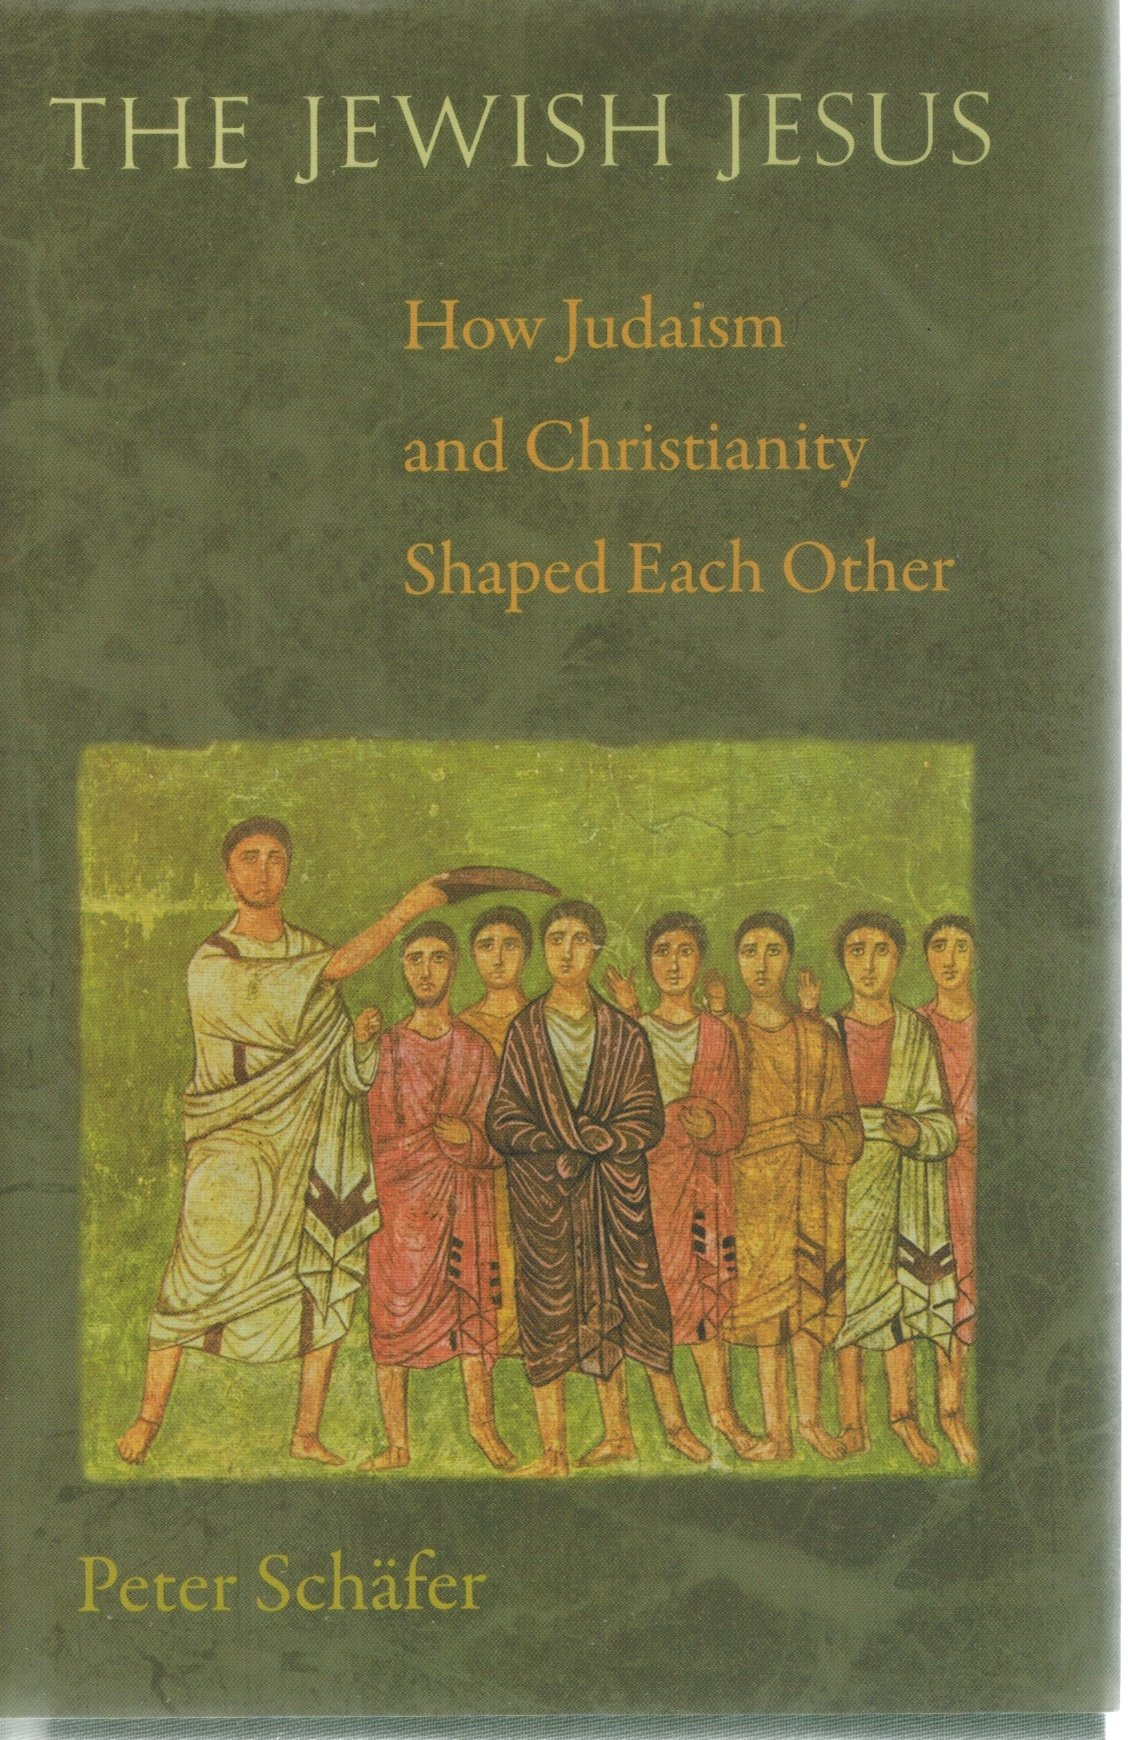 THE JEWISH JESUS How Judaism and Christianity Shaped Each Other  by Schäfer, Peter